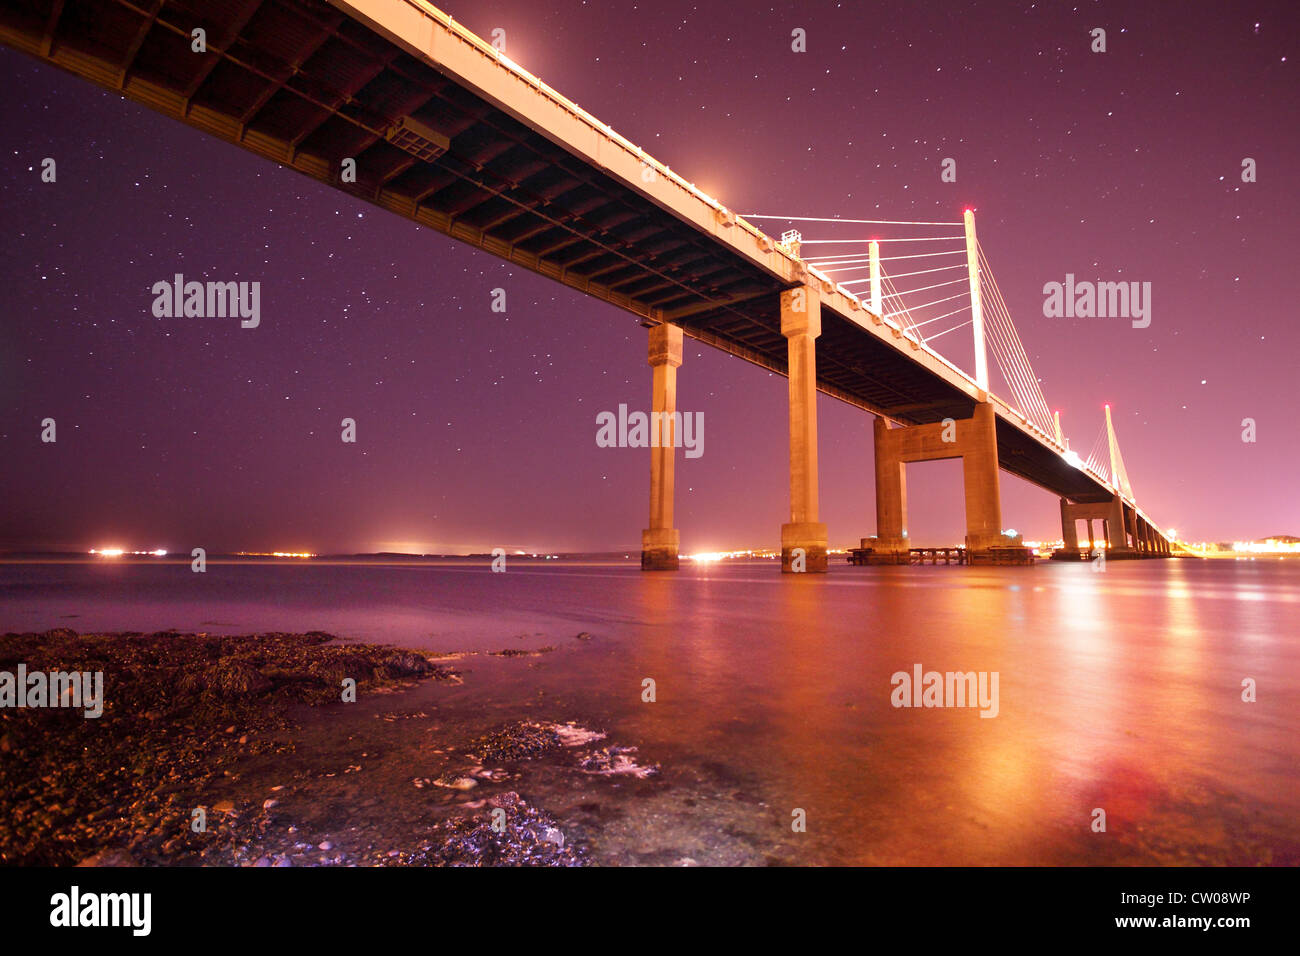 Star filled night across the Moray Firth and Kessock Bridge Highland Scotland - Stock Image